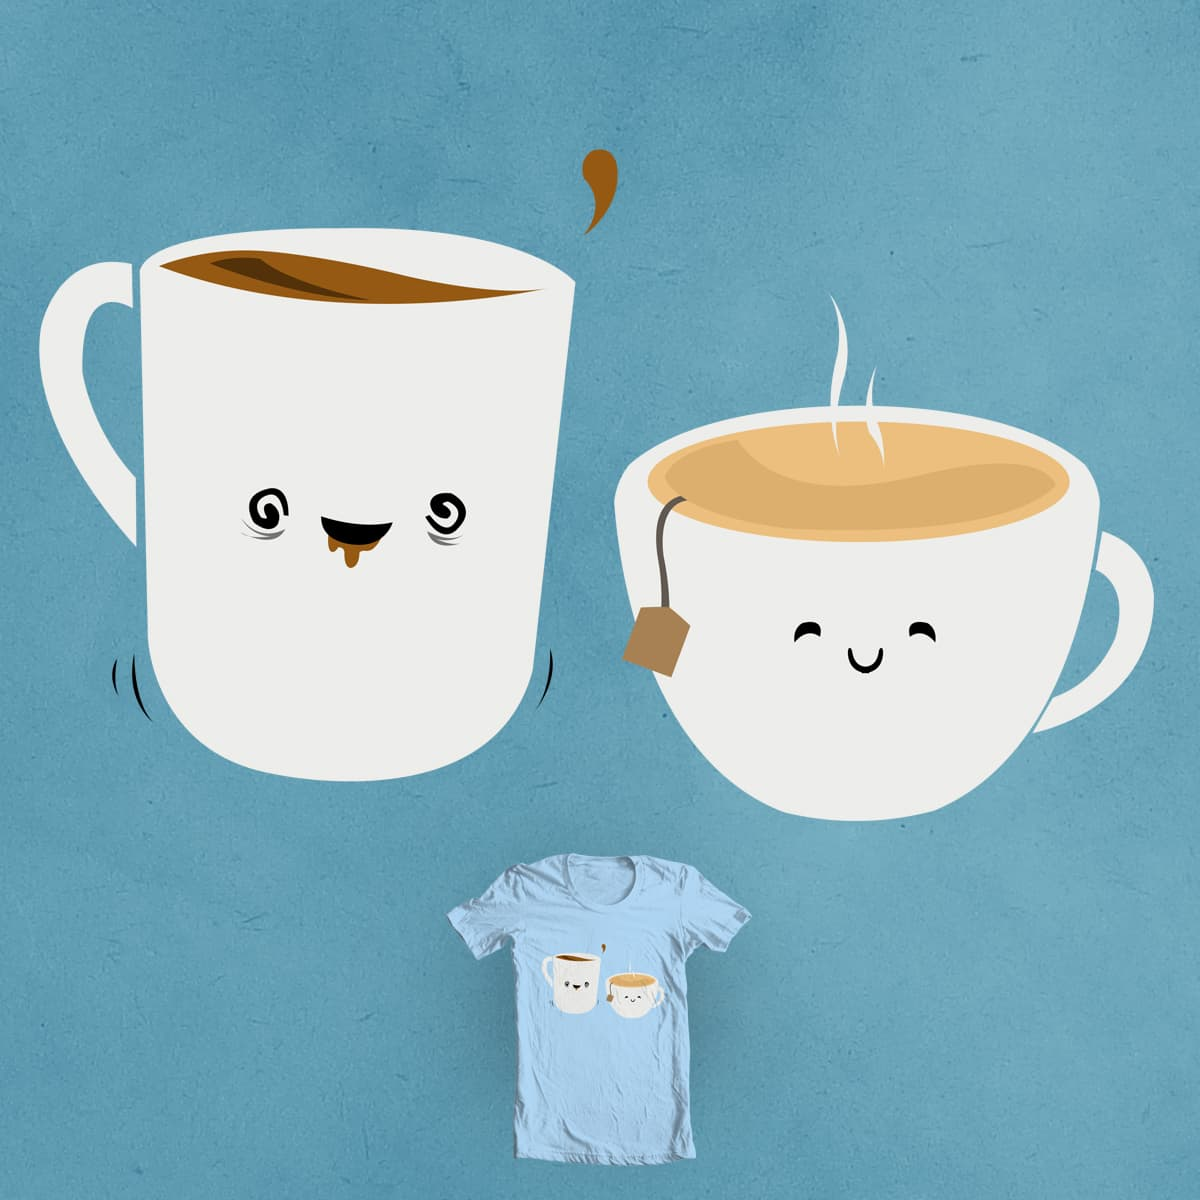 Morning Friends by Evan_Luza and Theo86 on Threadless